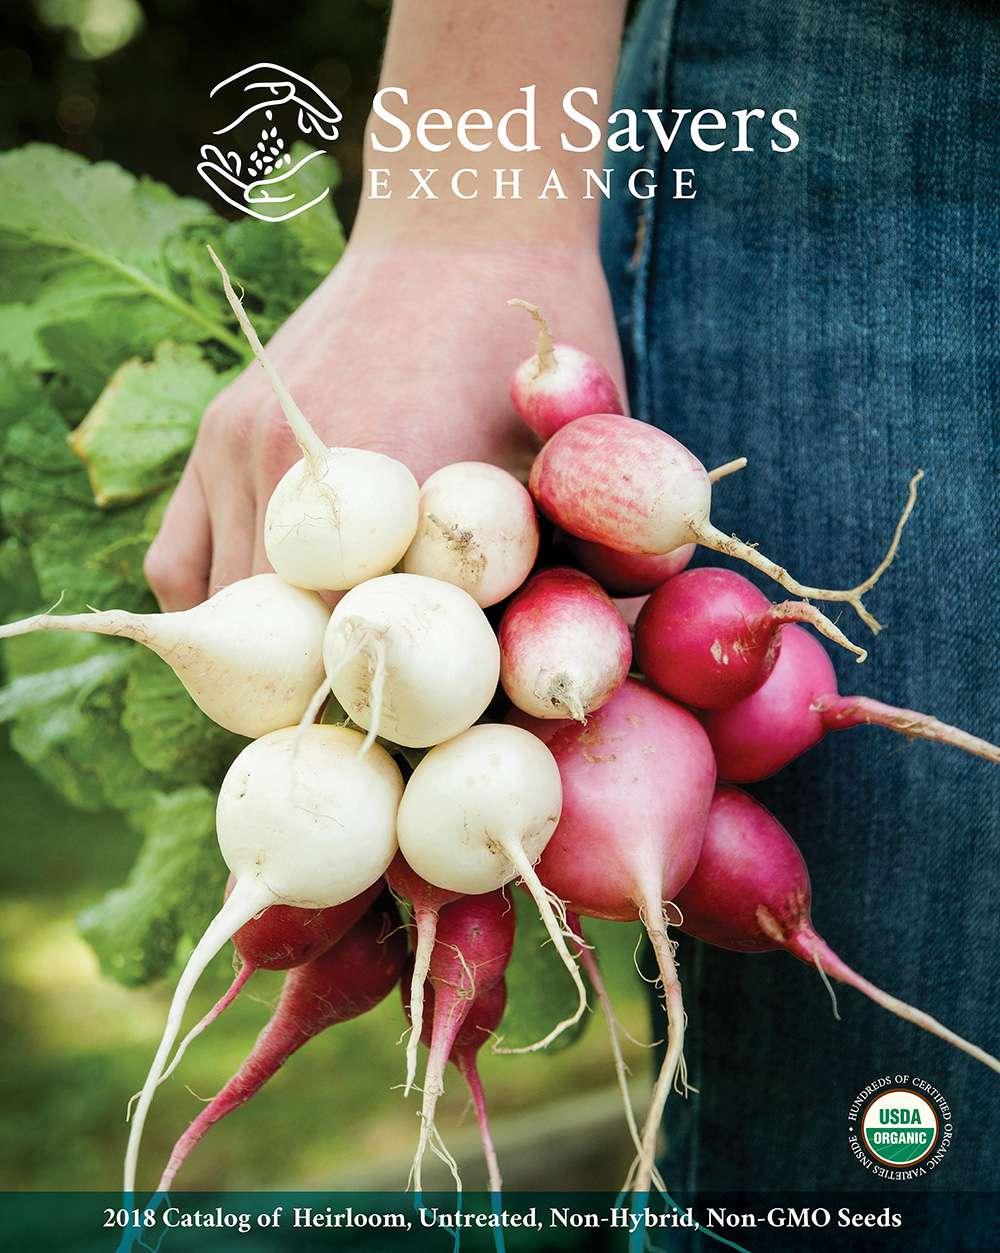 The cover of the 2018 Seed Savers Exchange catalog